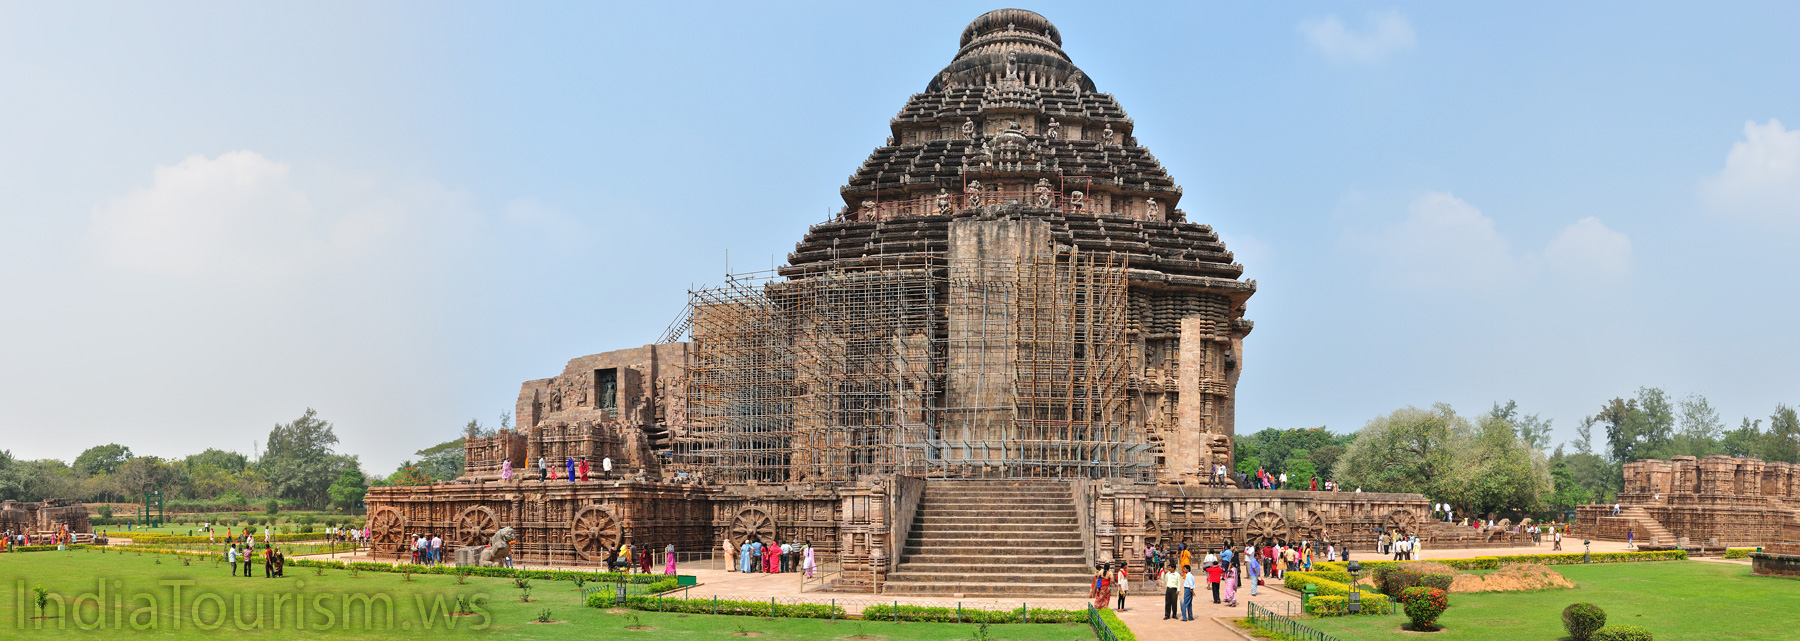 konark, the sun temple